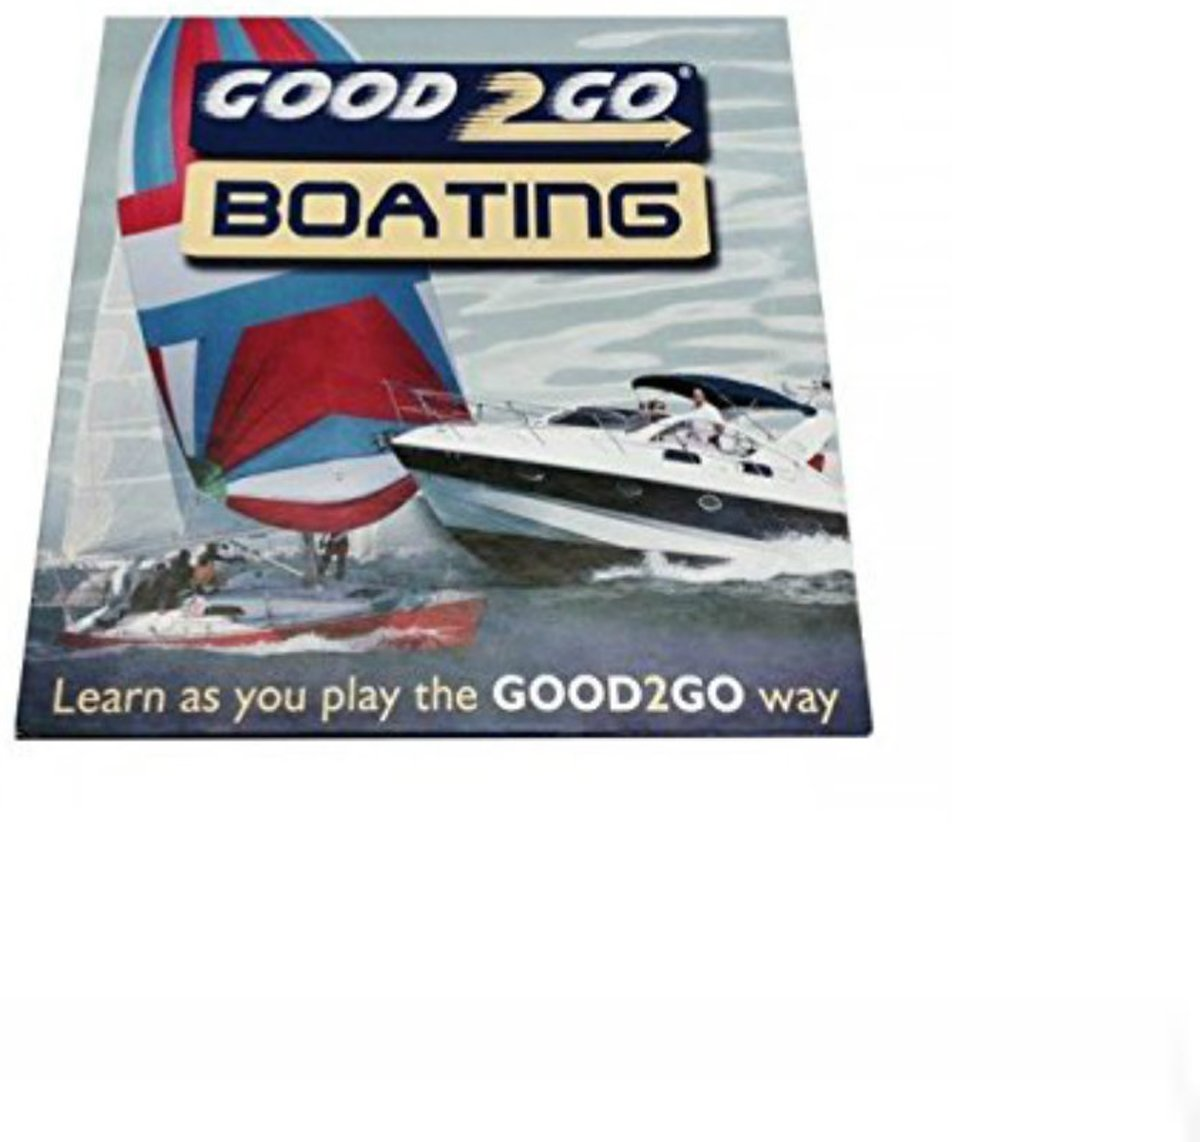 Boot spel game Good 2 go boating thema nautical maritiem